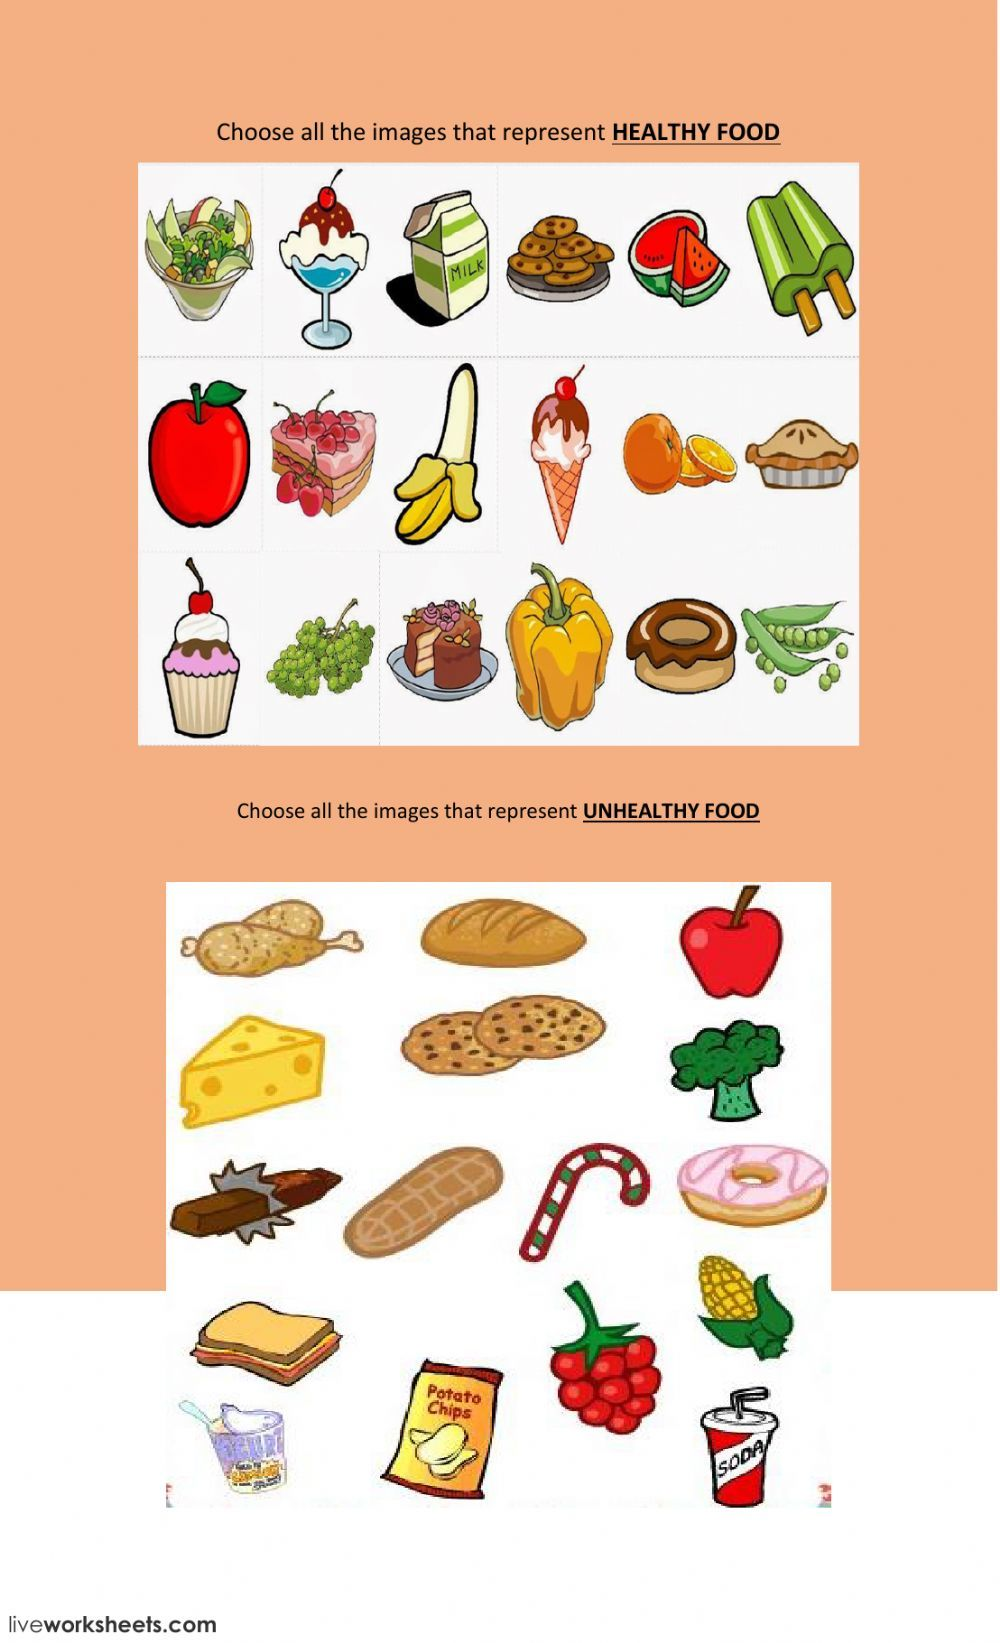 Healthy Unhealthy Food Interactive And Downloadable Worksheet You Can Do The Exercises Online Healthy And Unhealthy Food Unhealthy Food Unhealthy Food List [ 1643 x 1000 Pixel ]